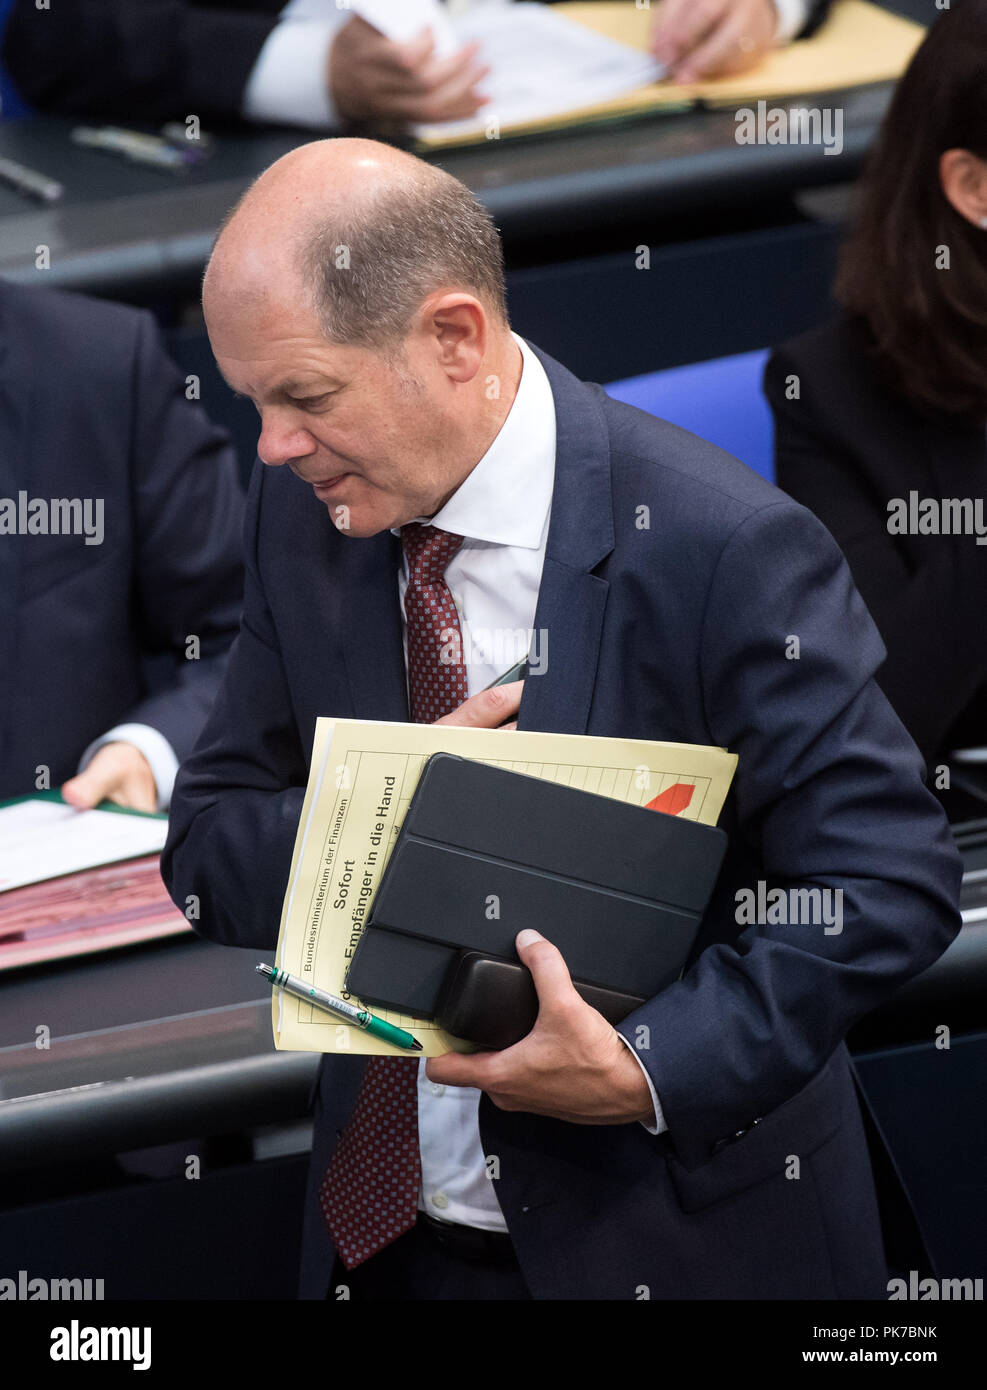 Berlin, Germany. 11 September 2018, Berlin: Olaf Scholz (SPD), Federal Minister of Finance, leaves the plenary session in the German Bundestag. The main topic of the 47th session of the 19th legislative period is the Federal Government's draft budget 2019 and the federal budget 2018 to 2022. Photo: Bernd von Jutrczenka/dpa Credit: dpa picture alliance/Alamy Live News - Stock Image